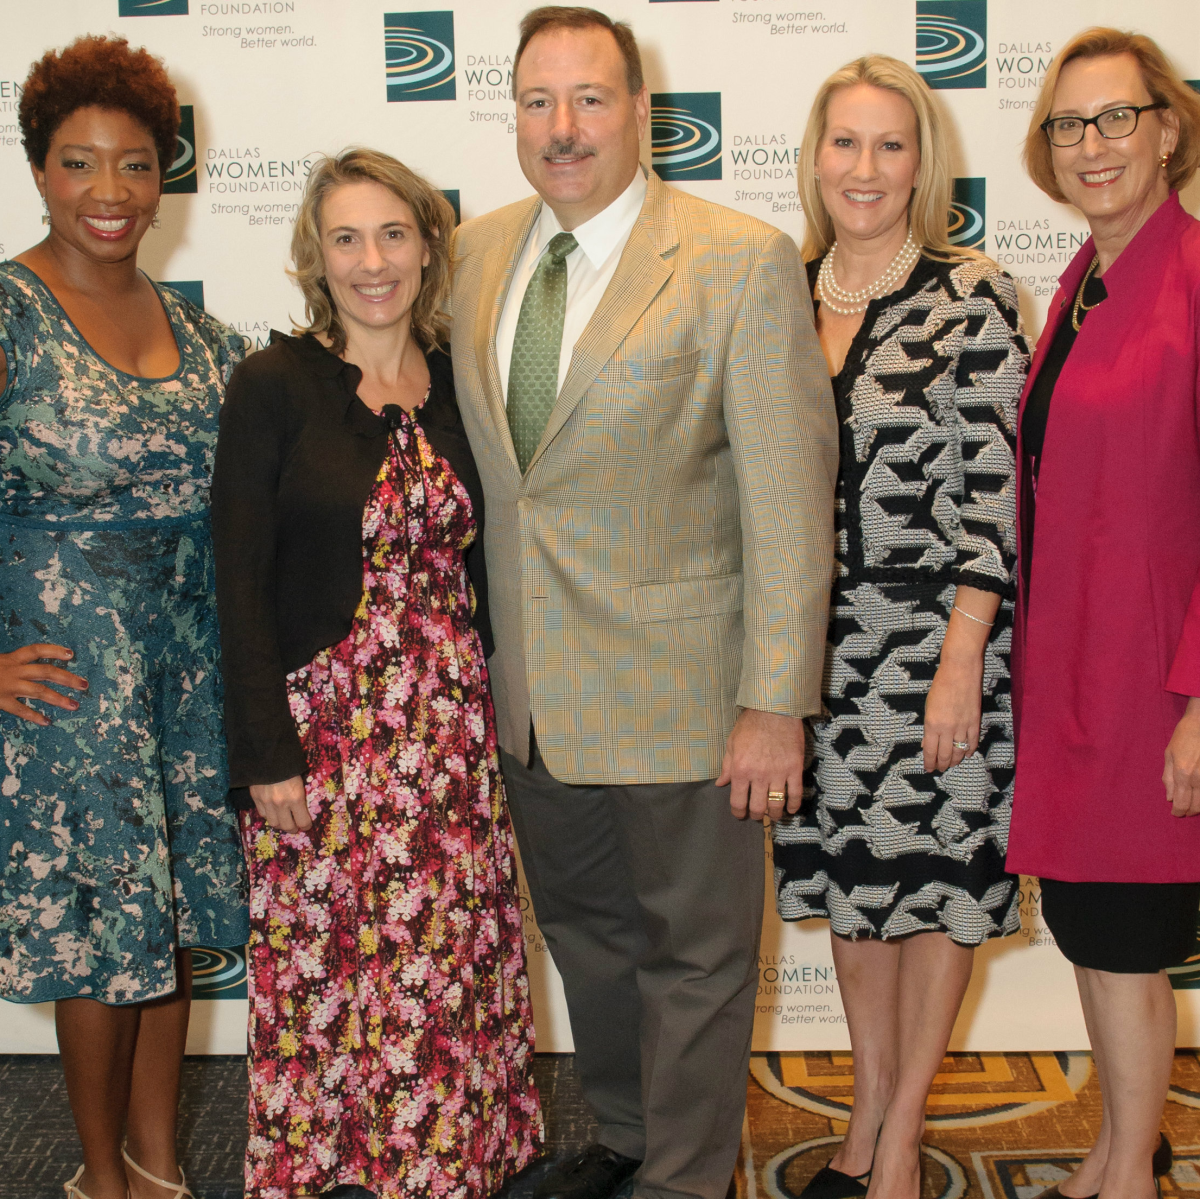 Shonn Brown, Dr. Hope Jahren, John Holt, Lisa Singleton, Roslyn Dawson   Thompson